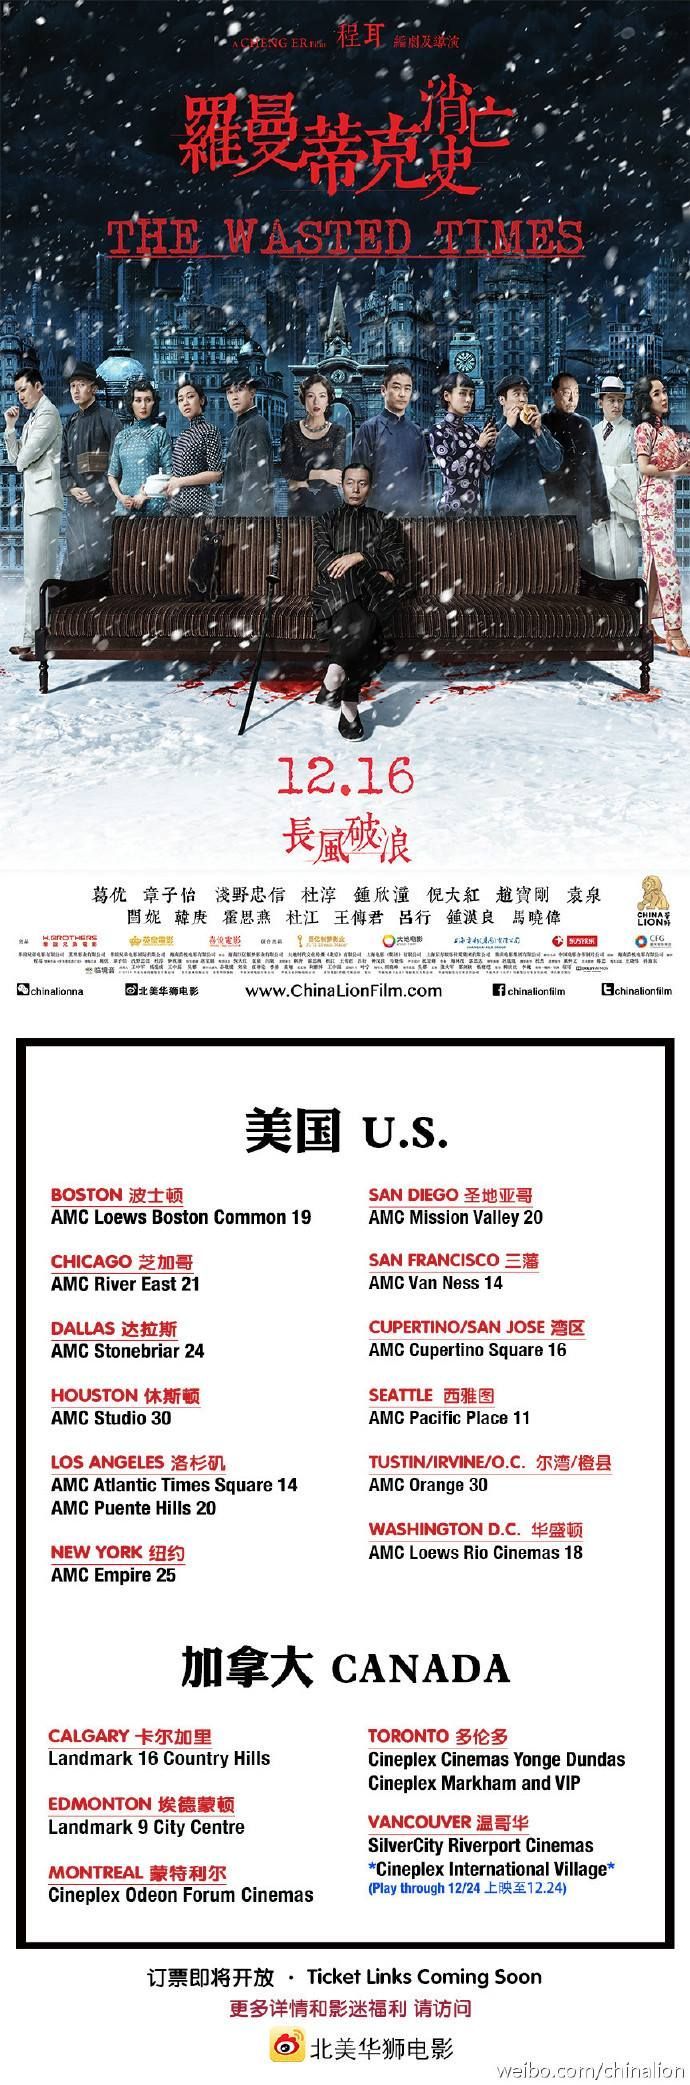 It is time to countdown for 2017!!! Chinalion wish you HAPPY NEW YEAR!!! For the holiday, we have the feast of movies for you: THE WASTED TIMES is still playing in some cities in North America , please check the info here: http://www.chinalionfilm.com/ RAILROAD TIGERS is going to visit UK on Jan 6th 2017, be prepared for that! (Please check theater list below!) http://www.chinalionfilm.com/ On Drama Fever, we offer you many choices like SO I MARRIED AN ANTI-FAN, SO YOUNG - NEVER GONE and BUT…